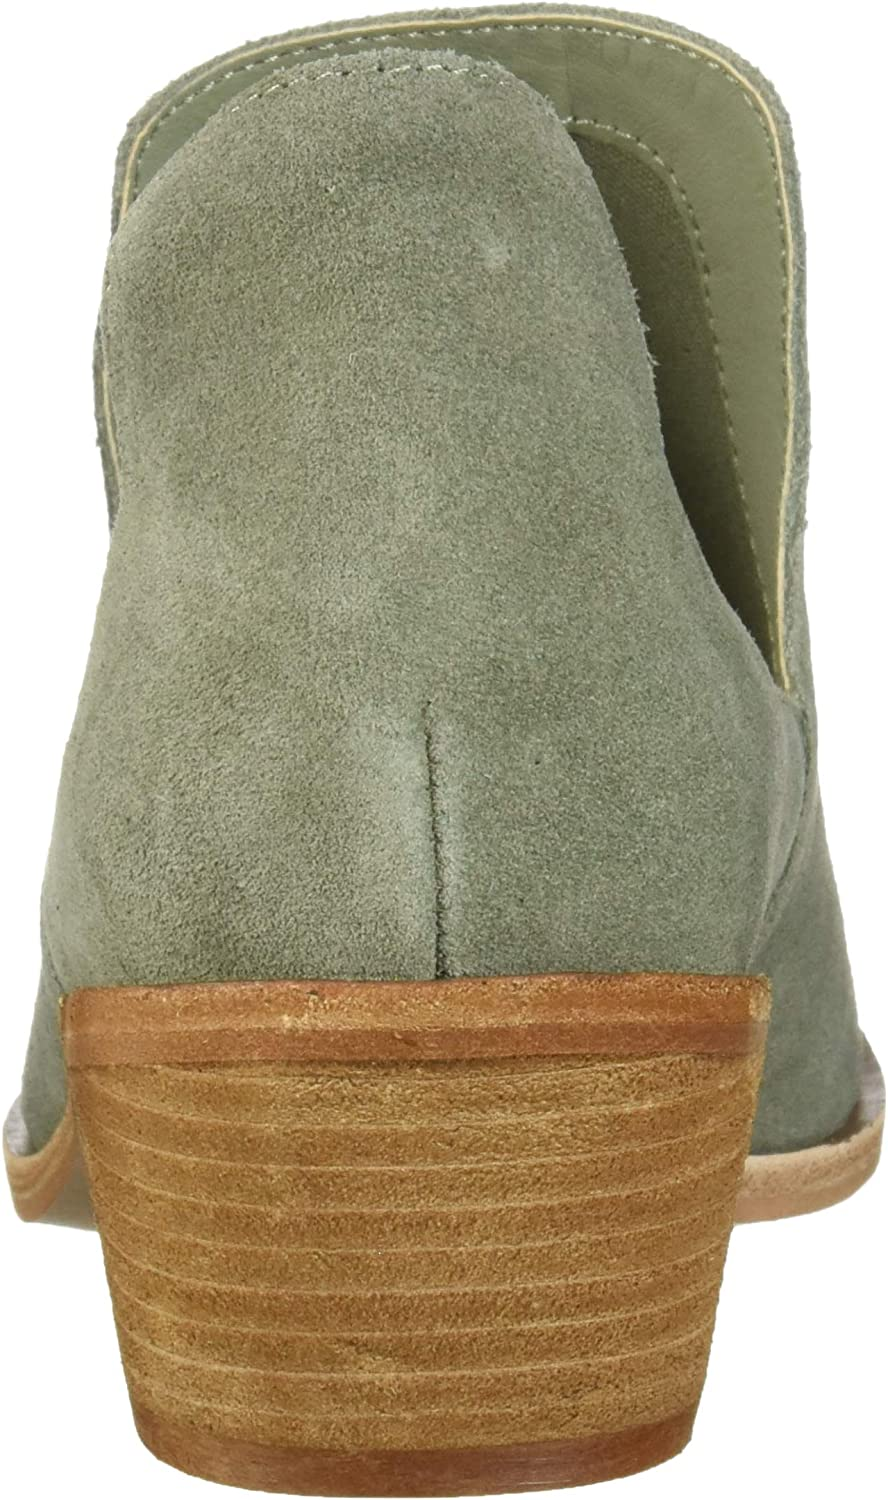 Chinese Laundry Women's Focus Ankle Bootie Olive Suede